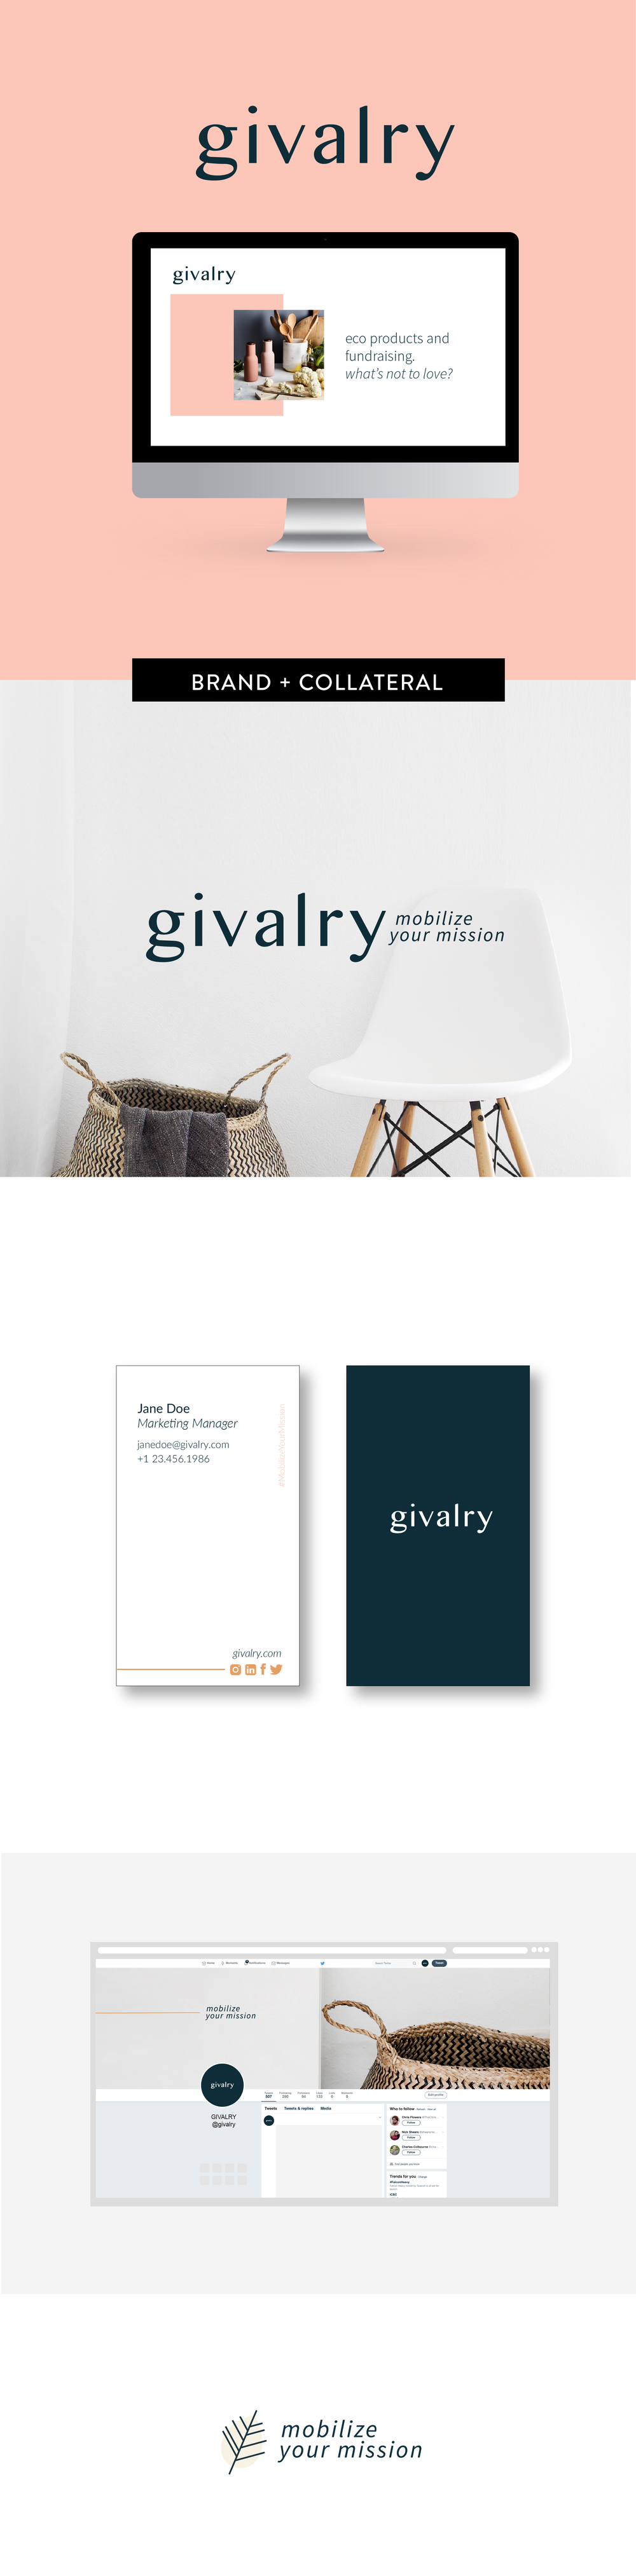 Brand and print design for Givalry by Salt Design Co.